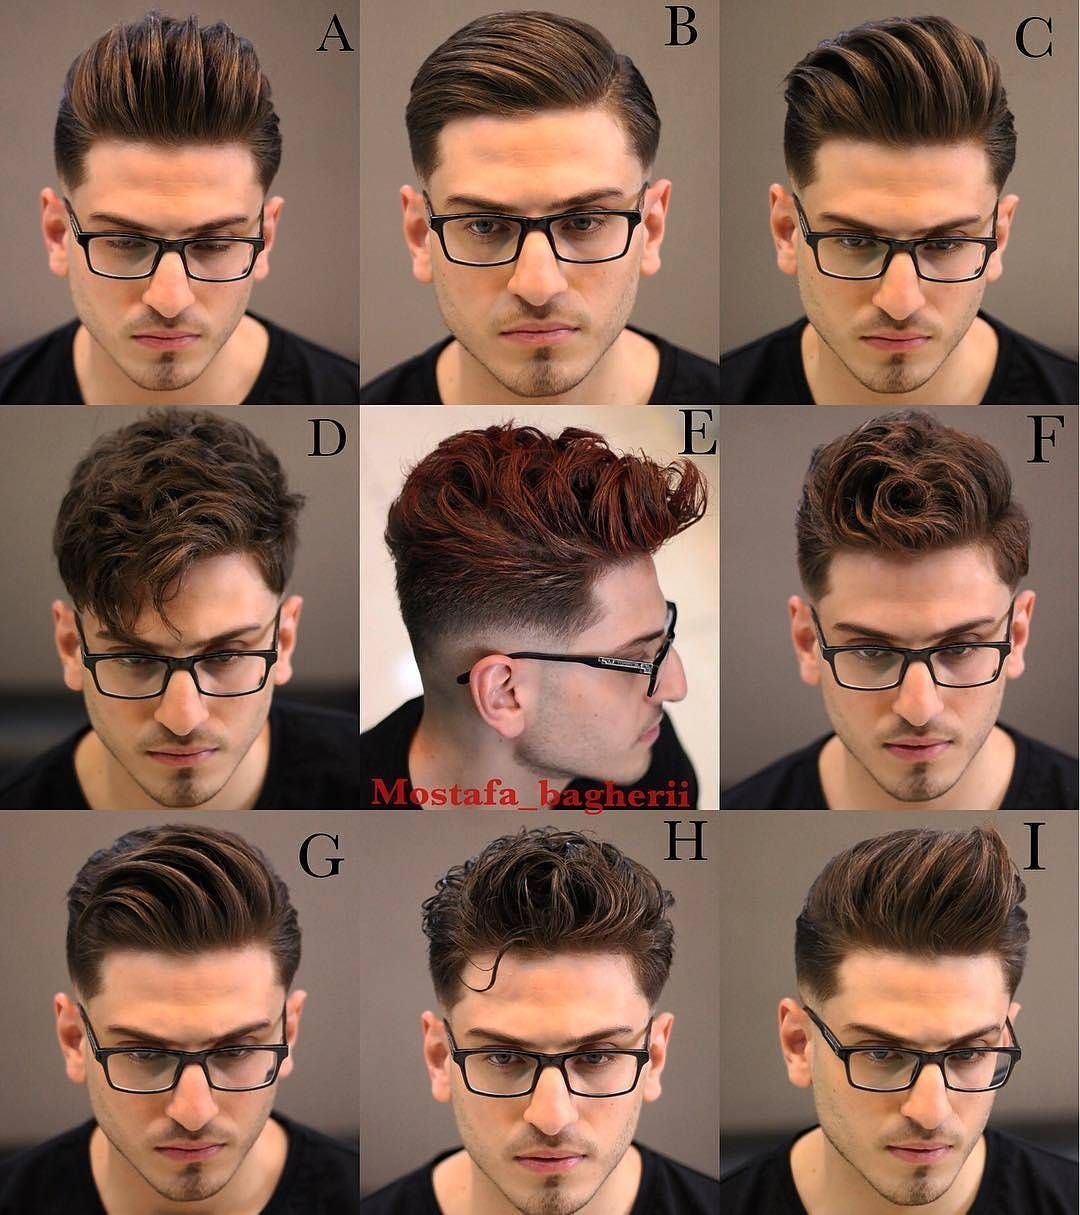 Haircut for boys age 10 k likes  comments  menus hair styles u fashion